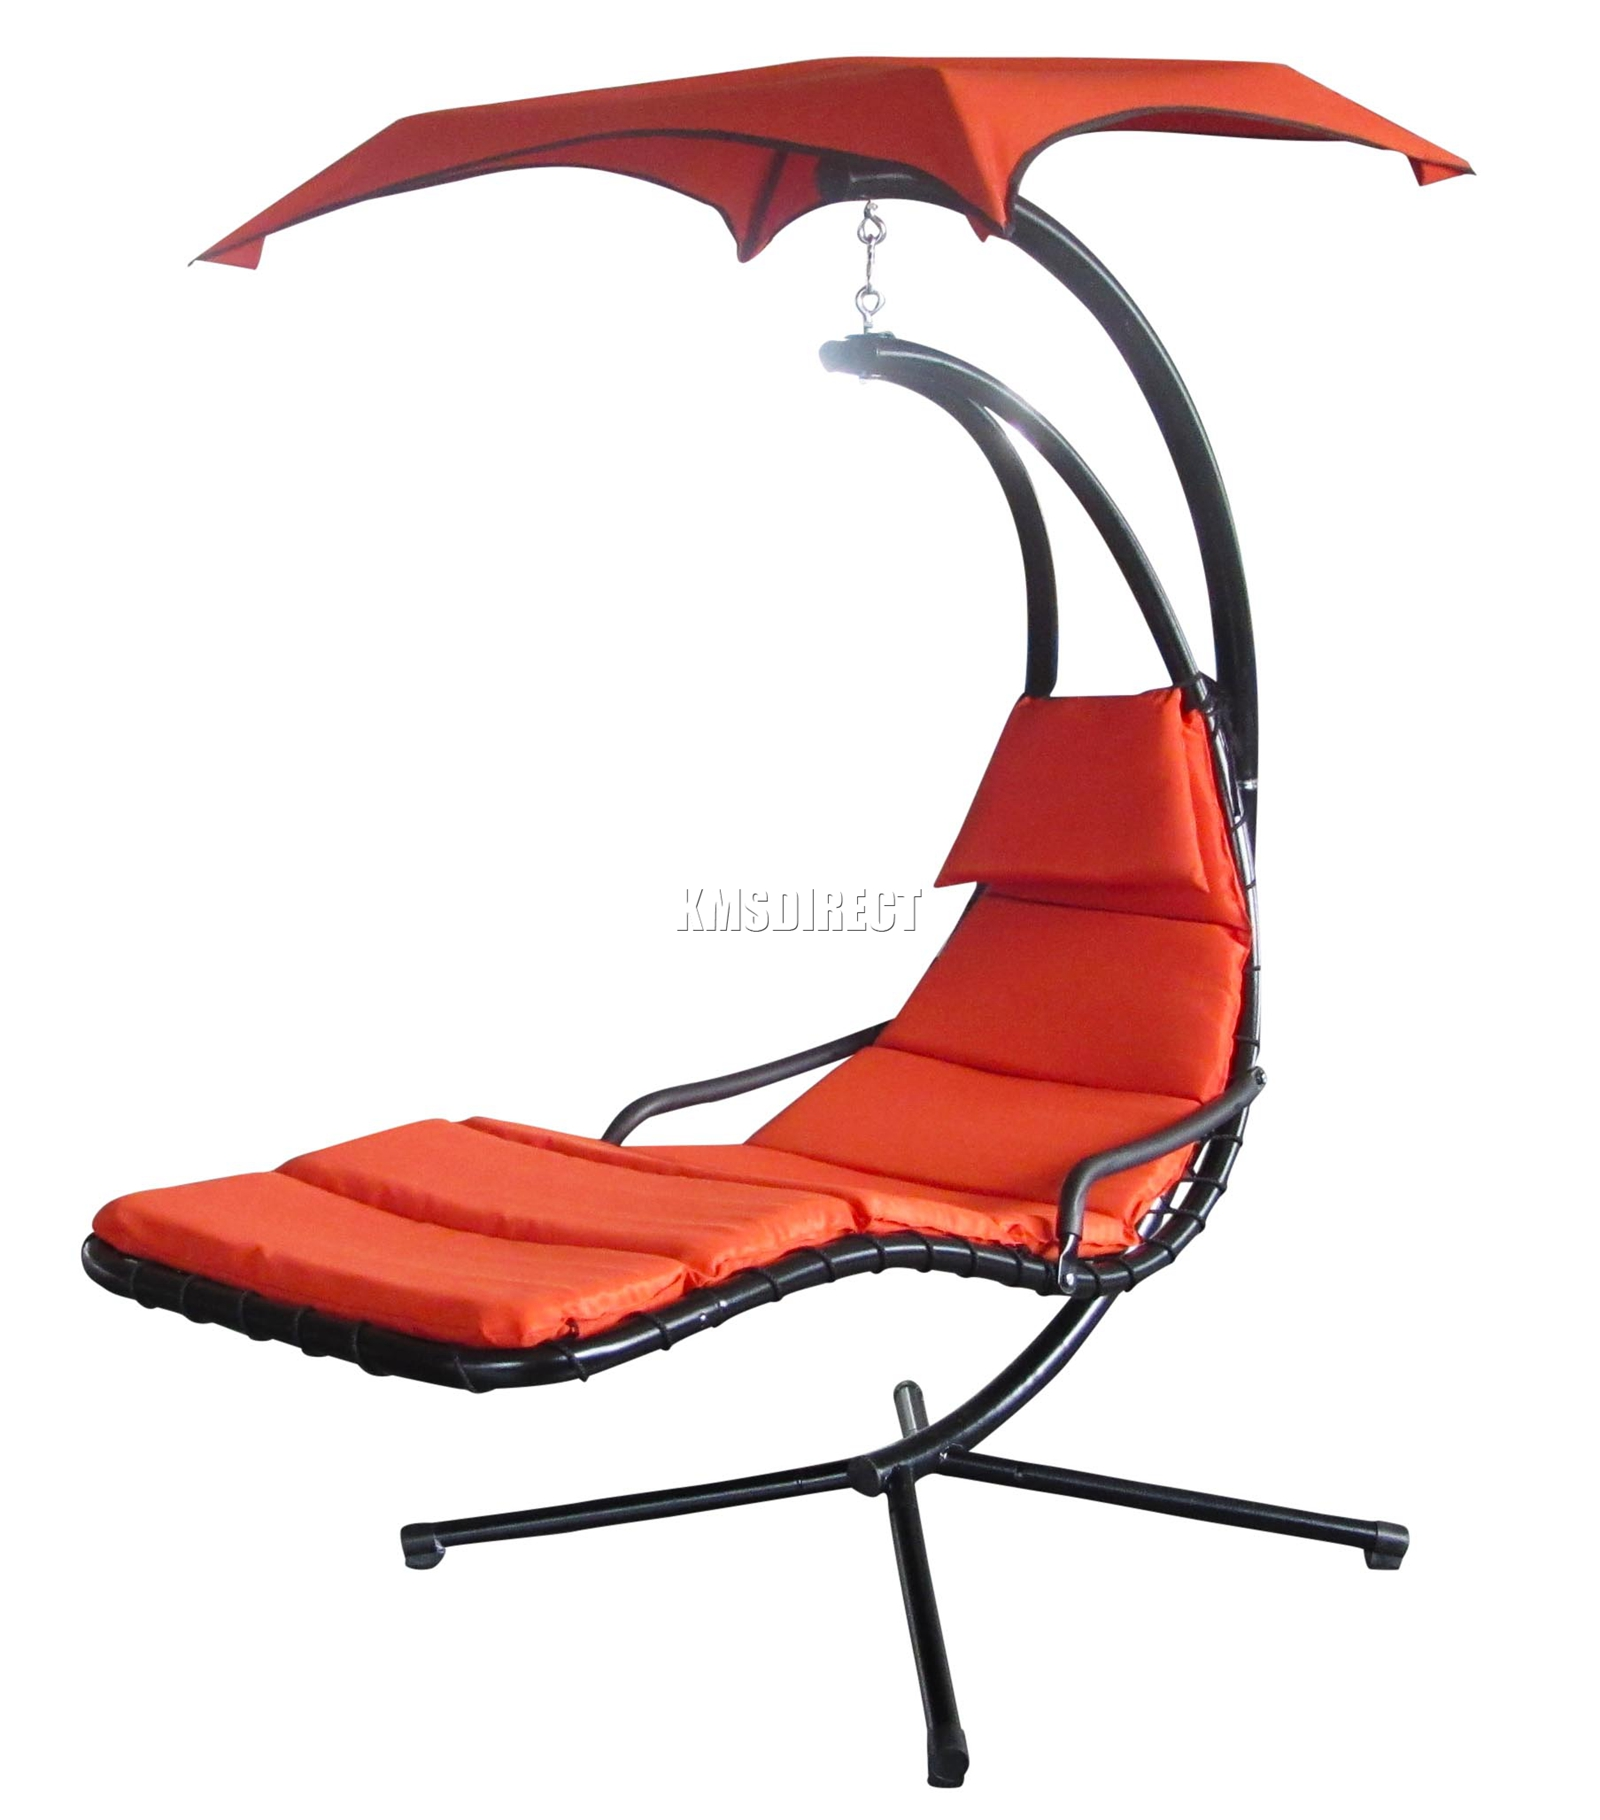 Stunning FoxHunter Orange Garden Swing Hammock Helicopter Hanging Chair Sun  1600 x 1820 · 483 kB · jpeg